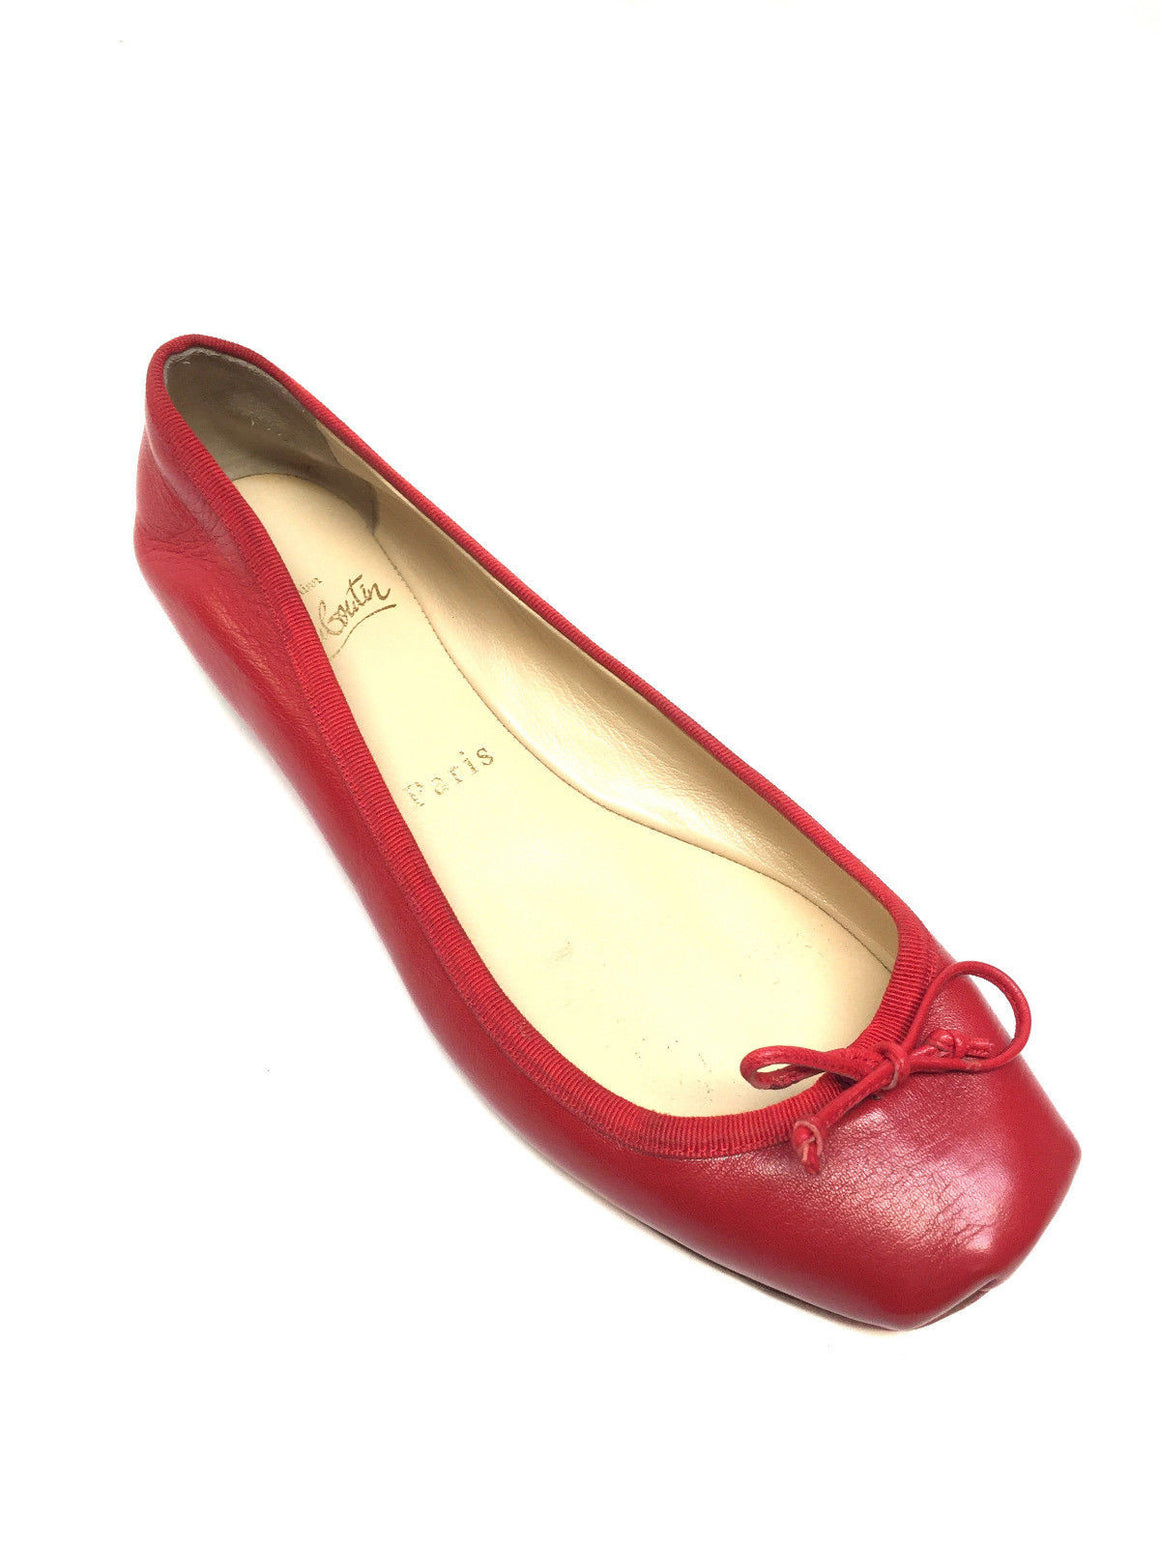 bisbiz.com CHRISTIAN LOUBOUTIN  Red Leather Ballet Flats Shoes  Size: 37.5 - Bis Luxury Resale